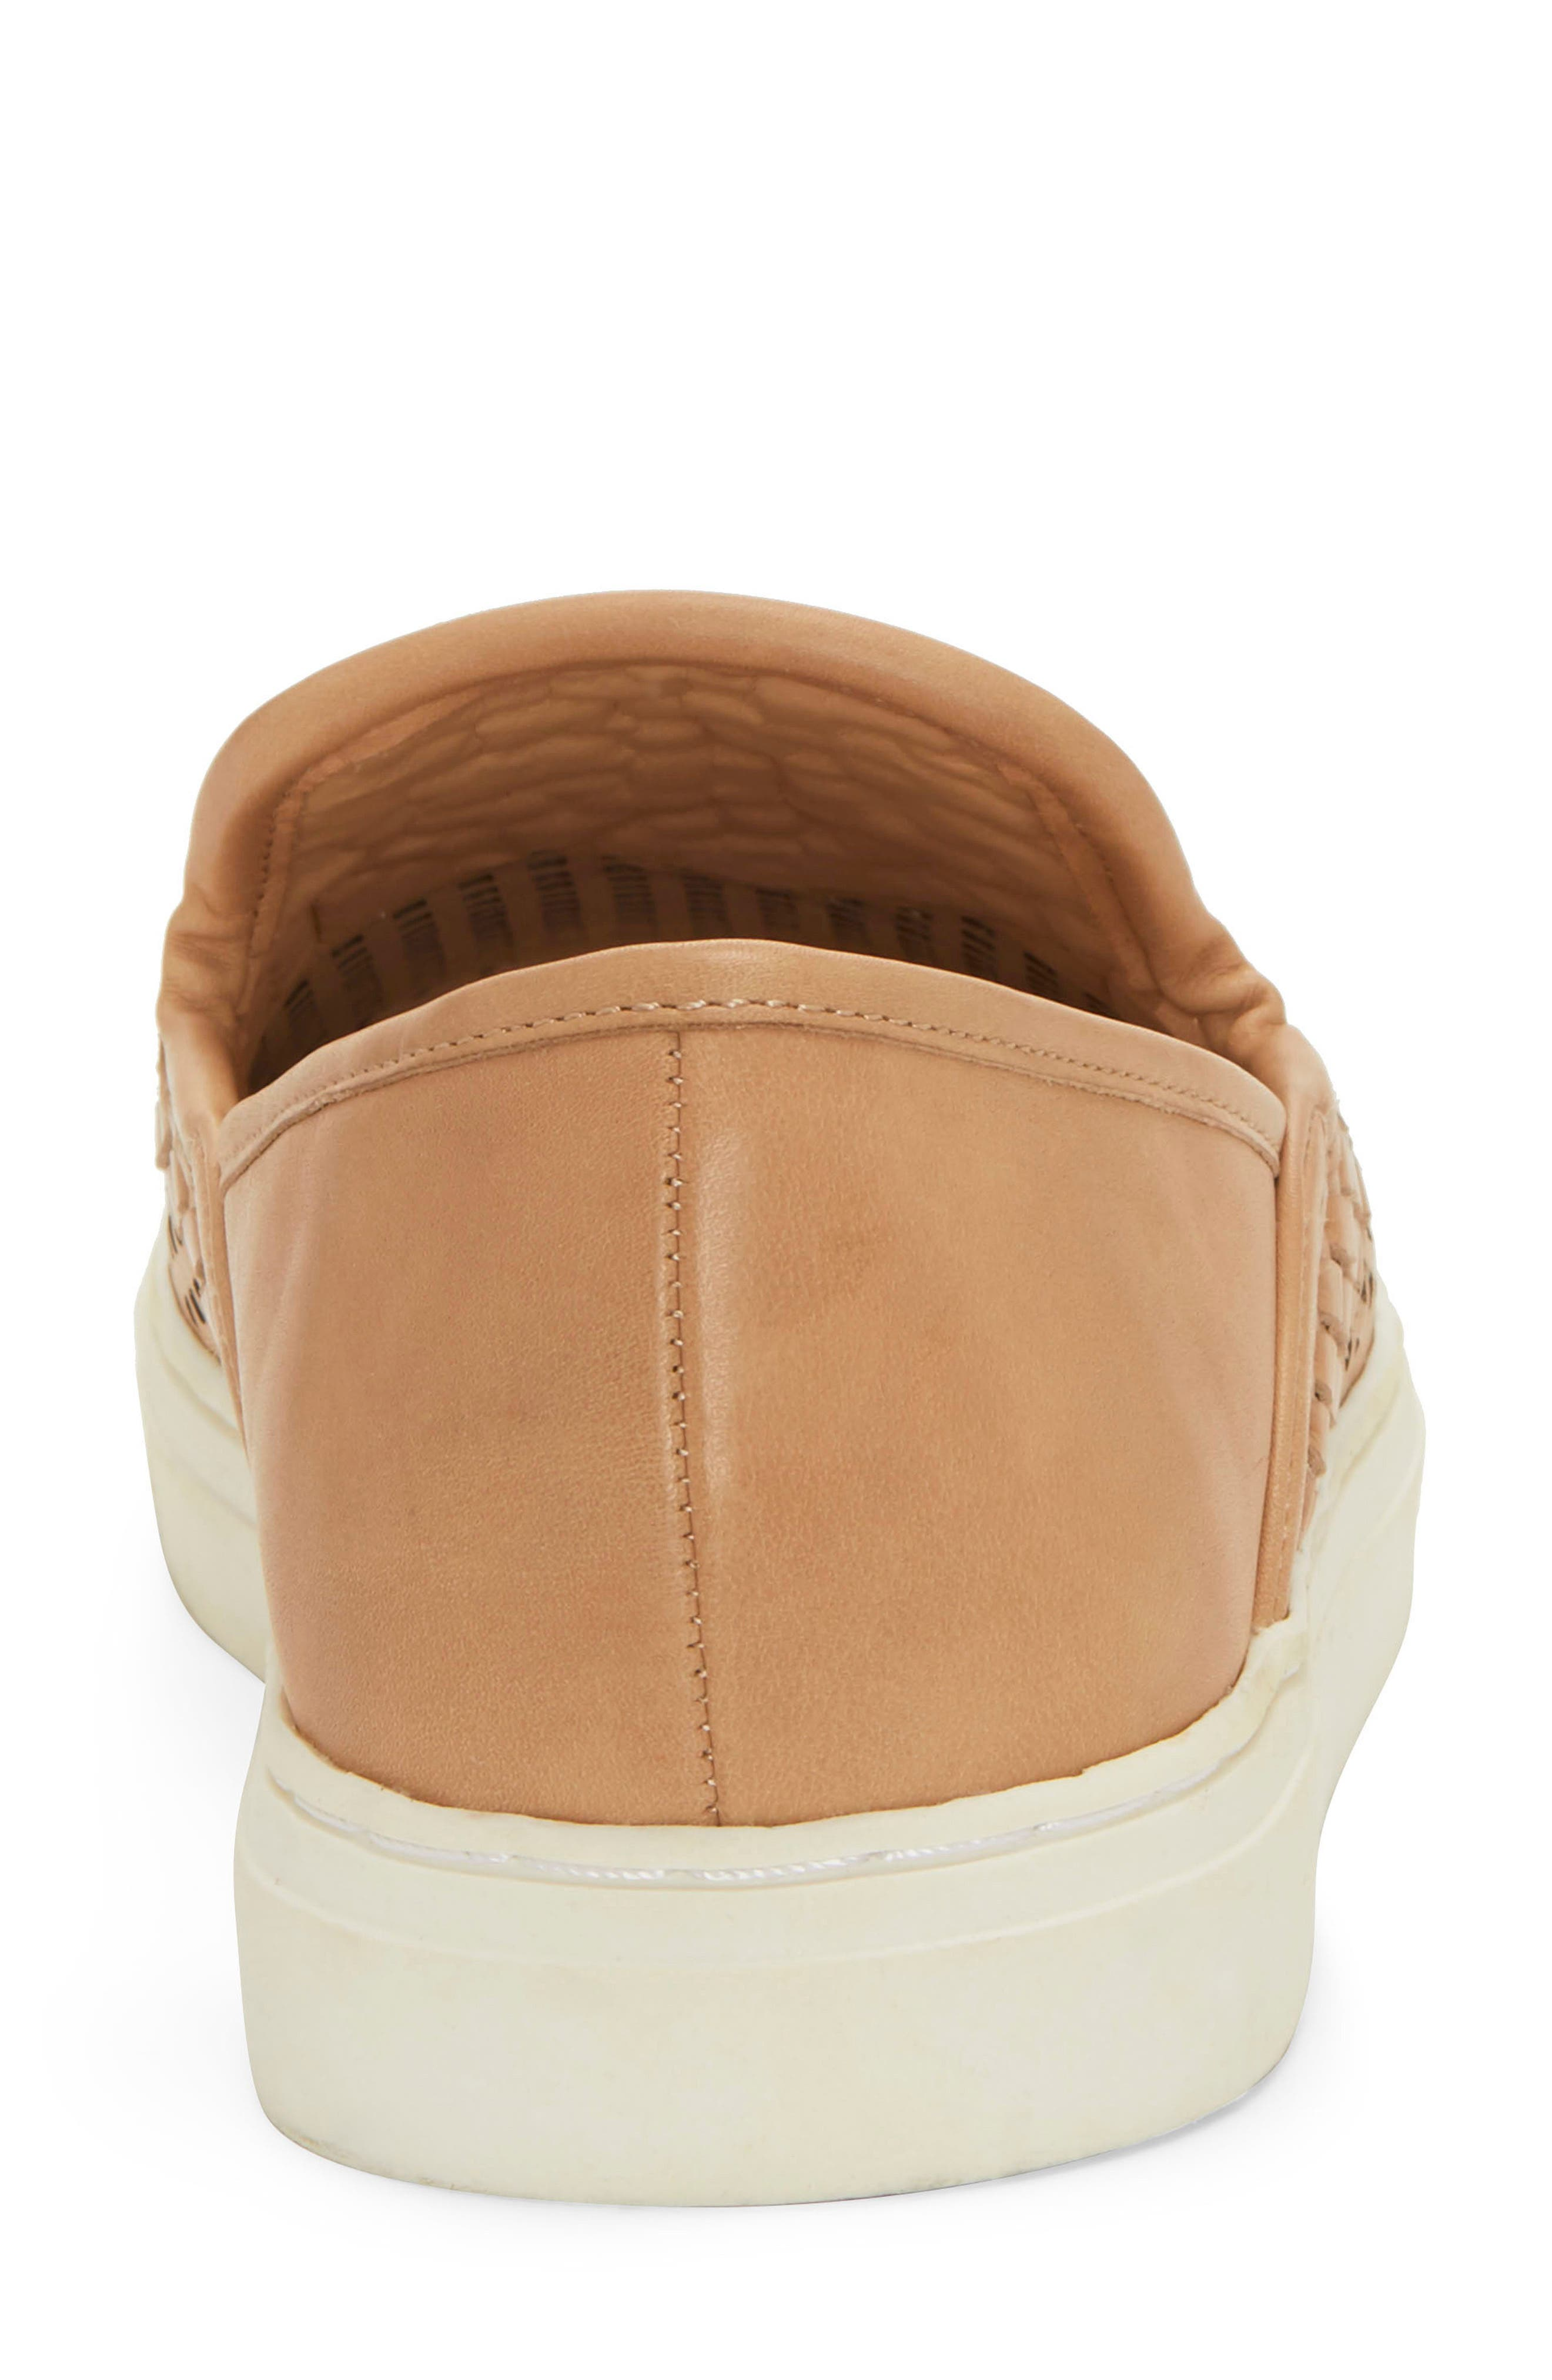 VINCE CAMUTO,                             Bristie Sneaker,                             Alternate thumbnail 7, color,                             NATURAL LEATHER